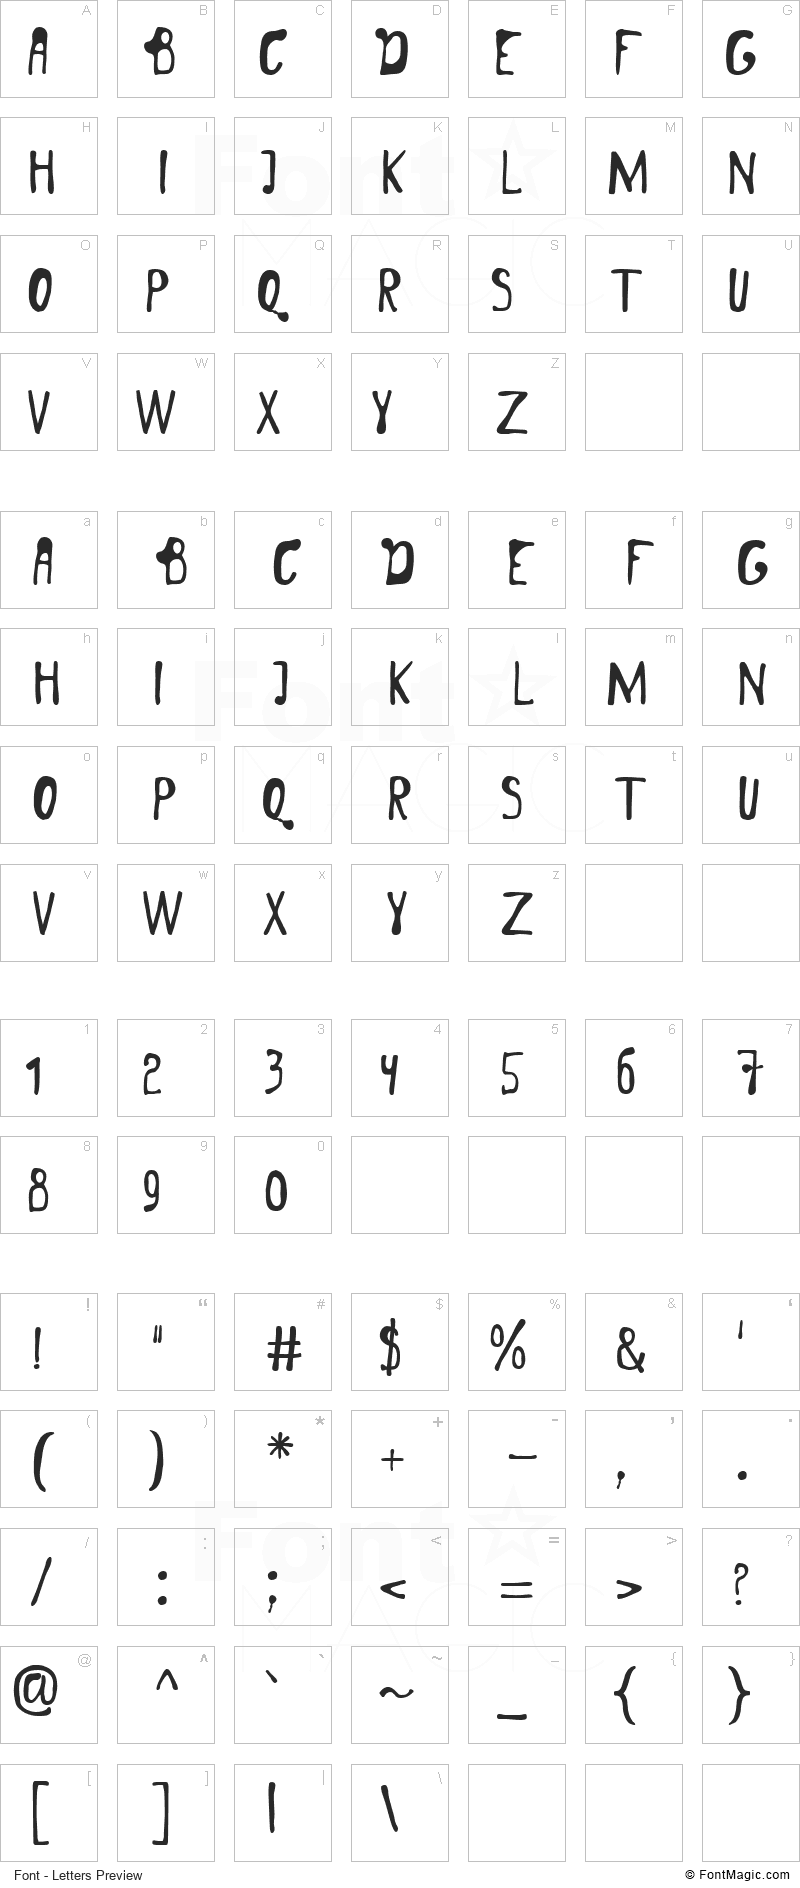 London Font - All Latters Preview Chart